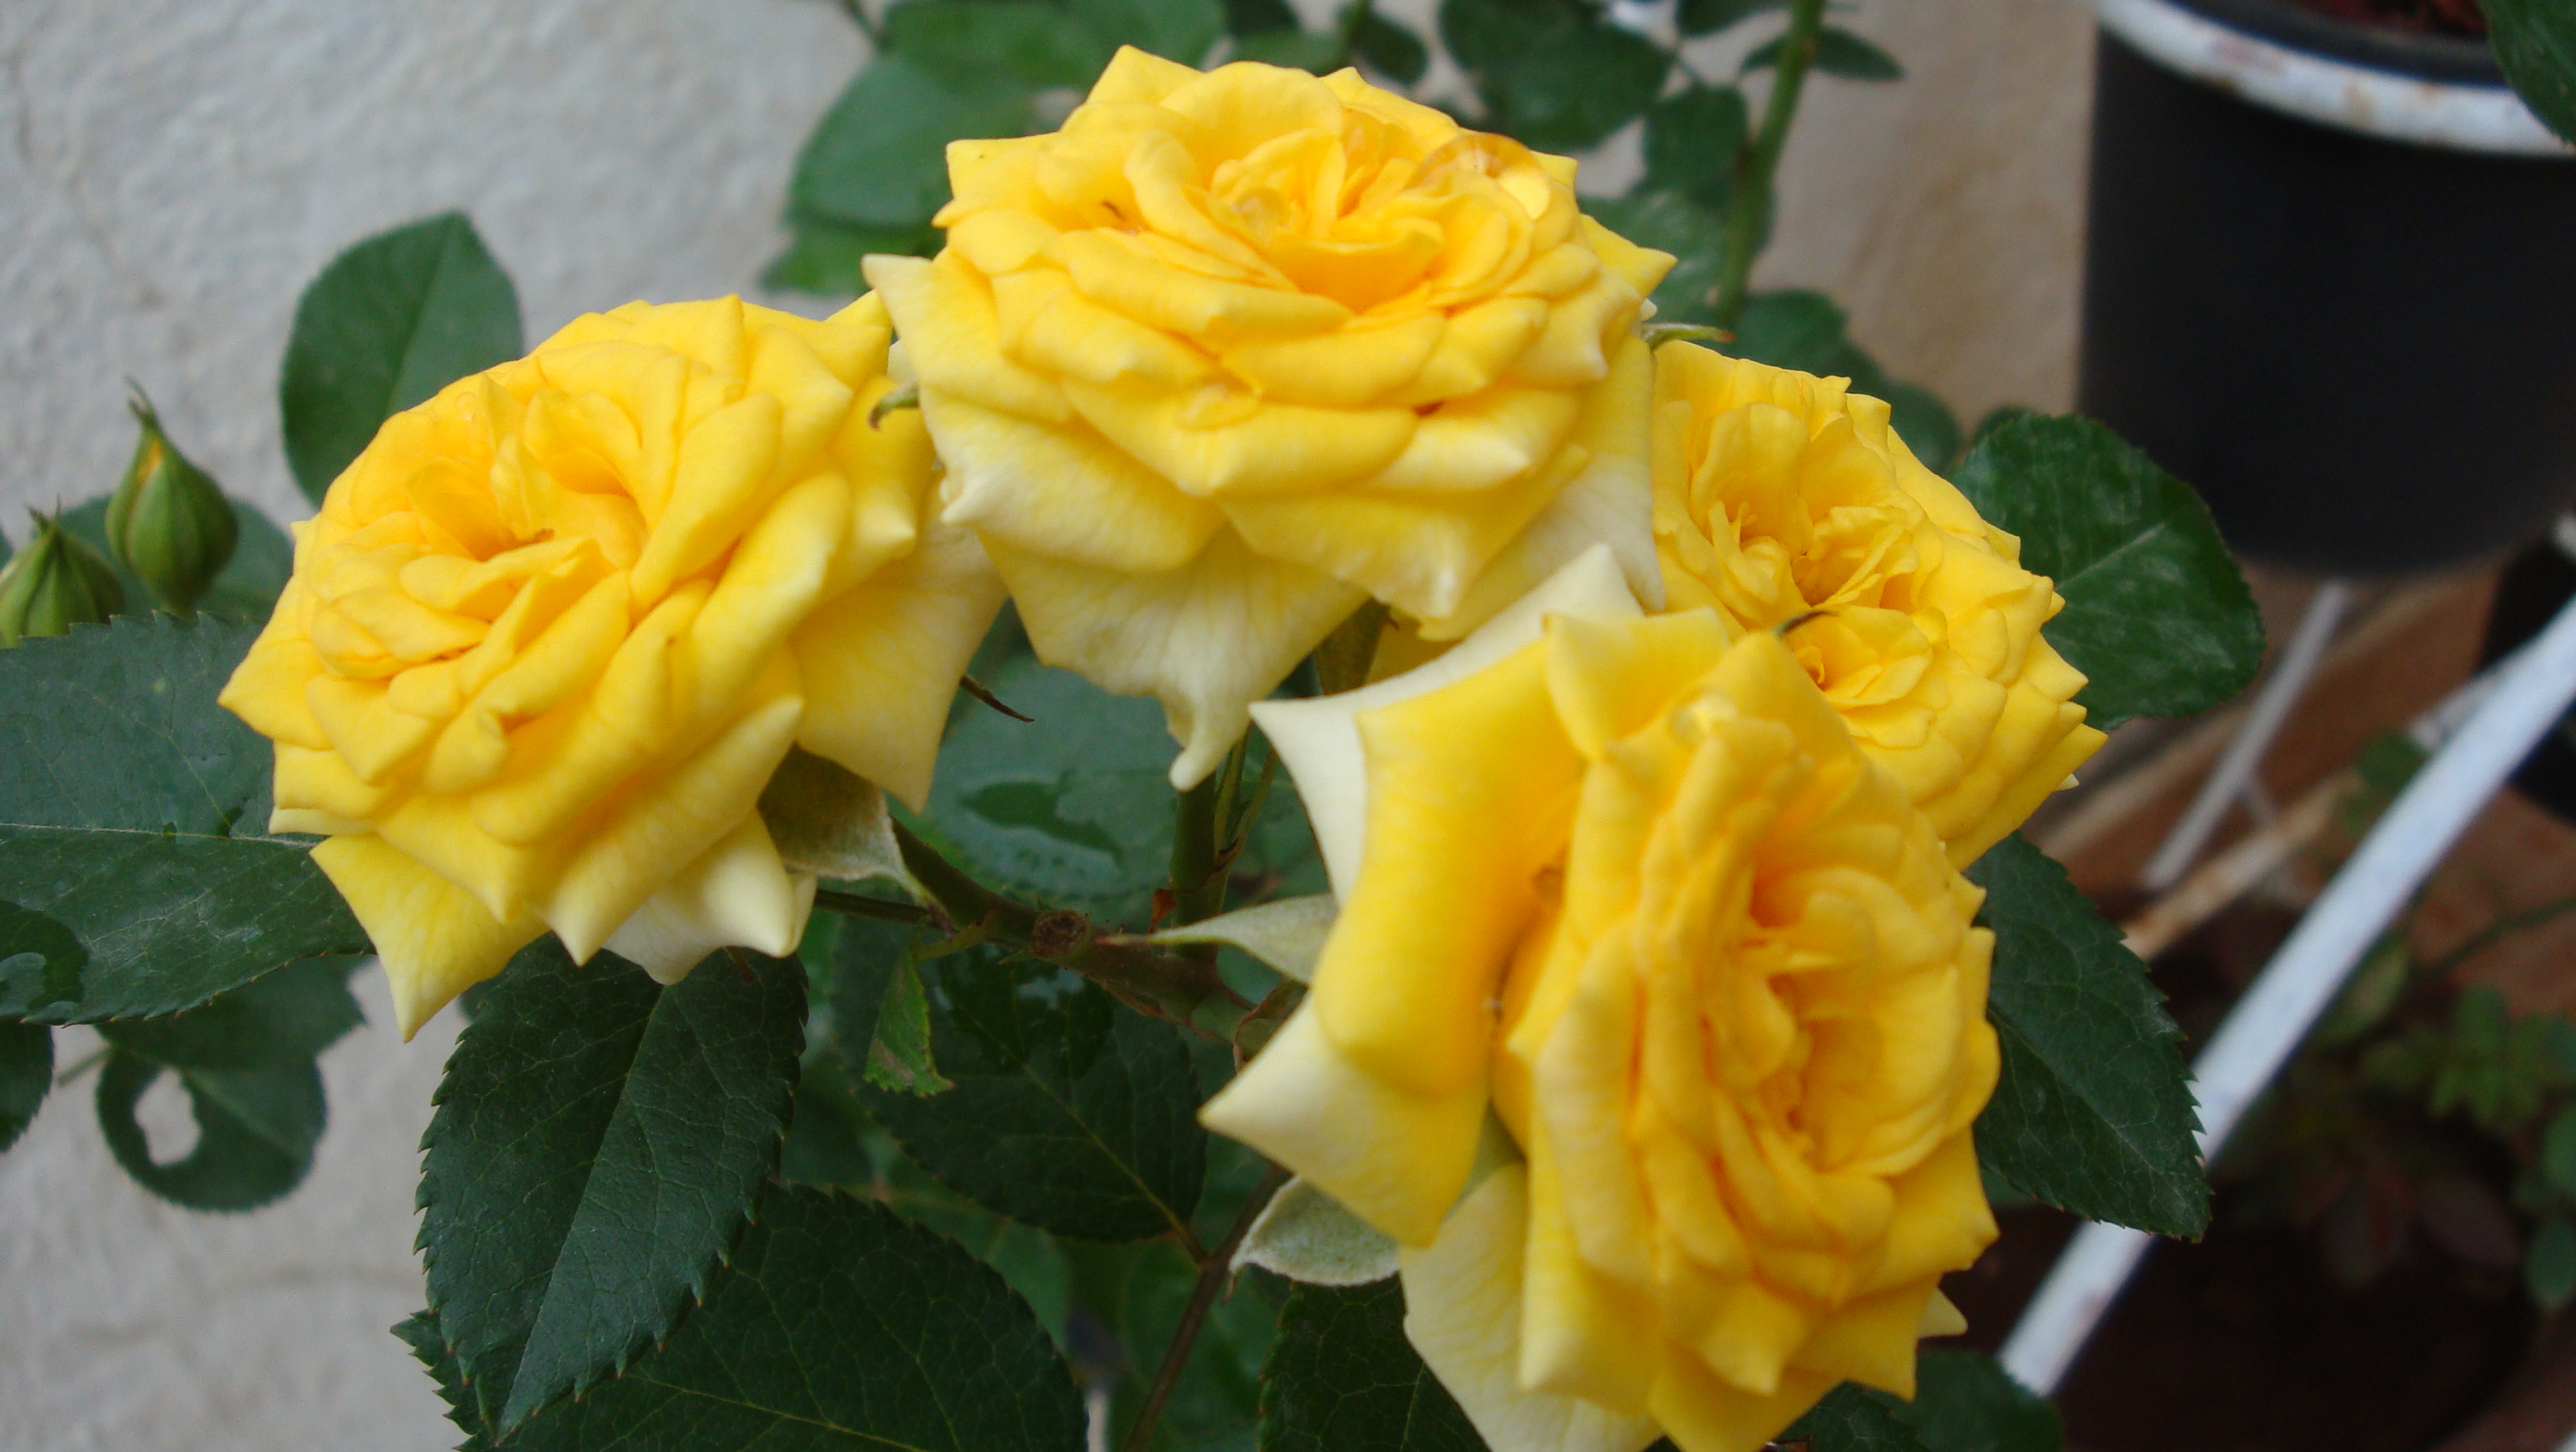 Yellow roses mean i care